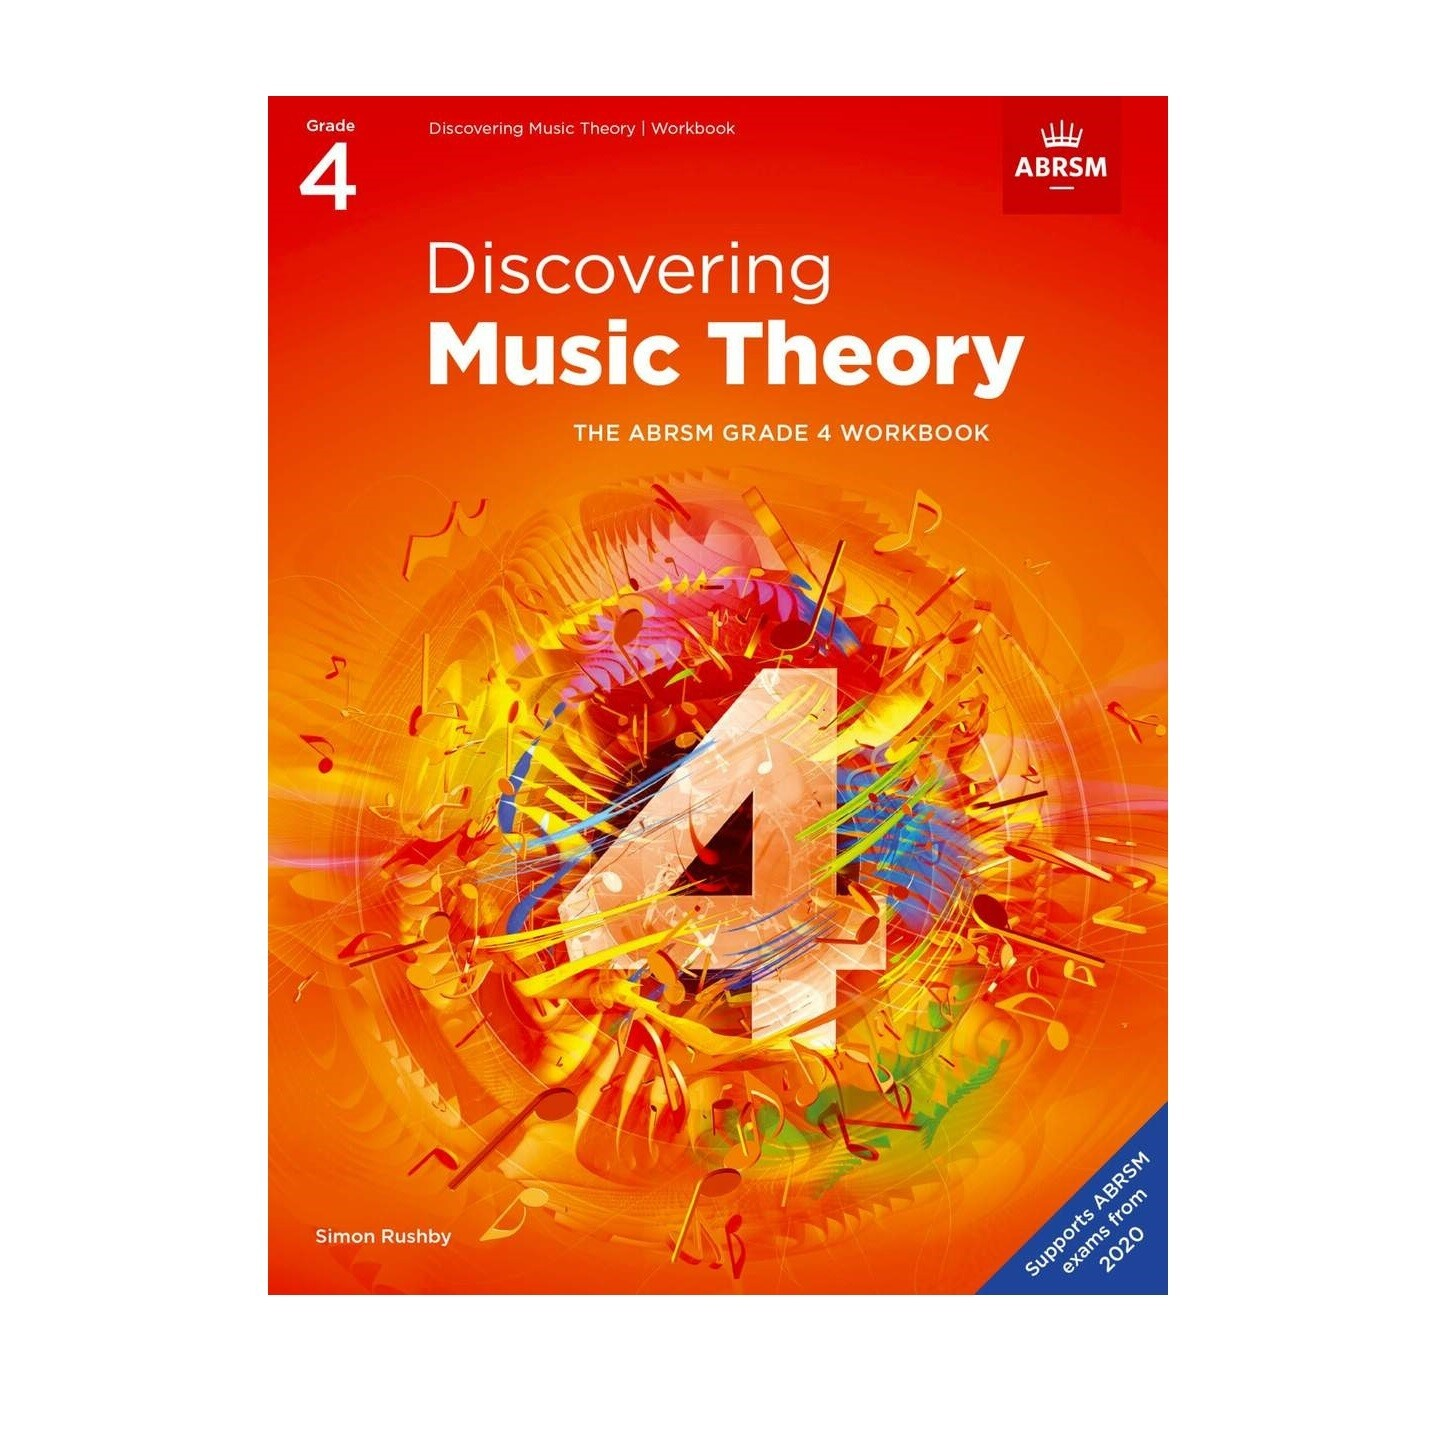 ABRSM Discovering Music Theory Book -  Grade 4